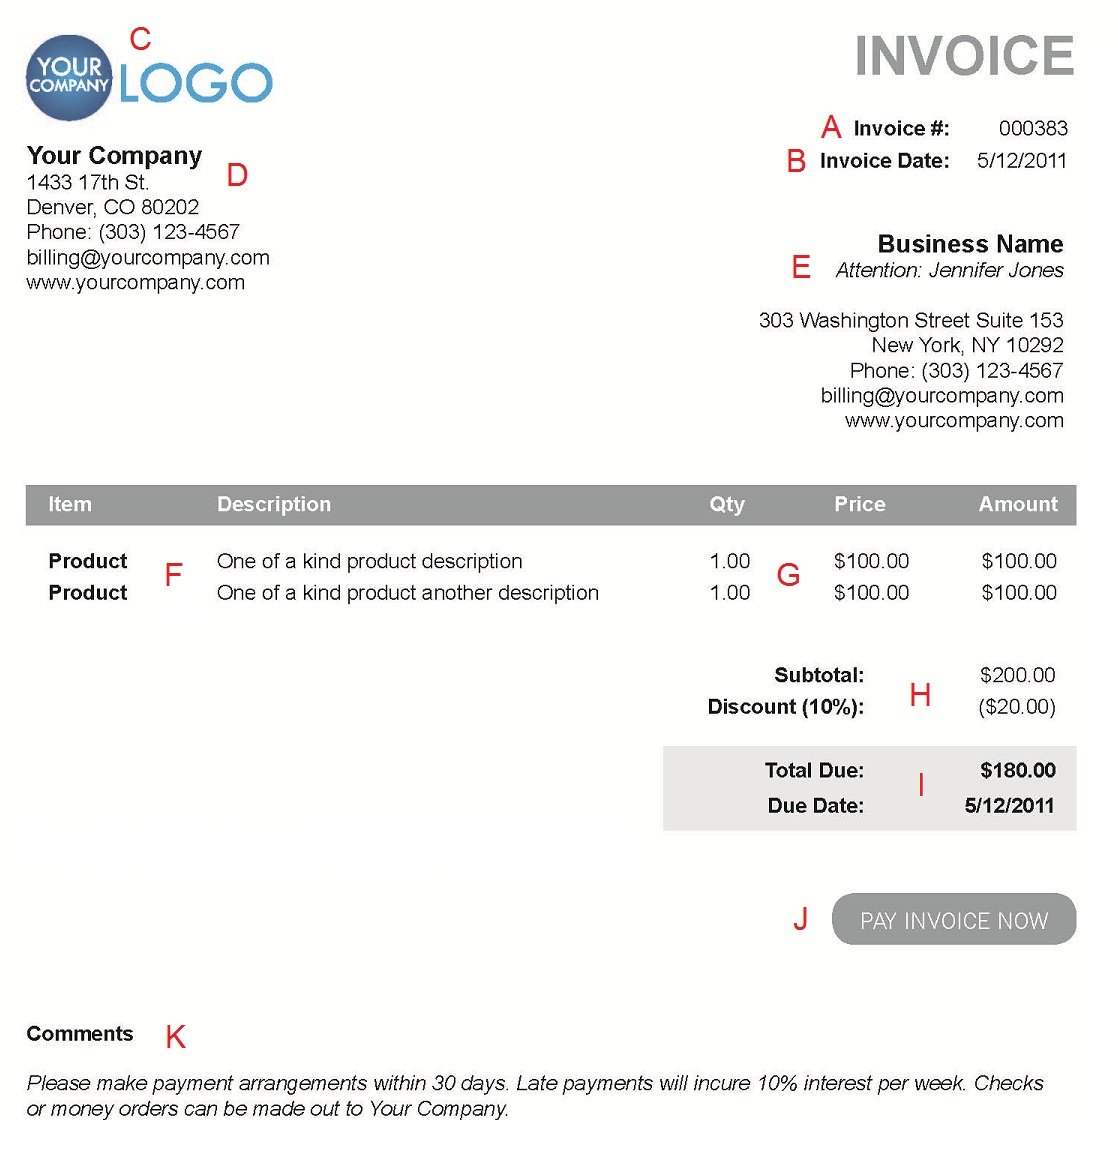 Conservativereviewus  Marvellous The  Different Sections Of An Electronic Payment Invoice With Marvelous A  With Alluring How To Make Invoices In Word Also Proforma Invoice And Commercial Invoice In Addition Recipient Created Tax Invoice Example And Invoice Tempaltes As Well As Format Of Proforma Invoice Additionally How To Find Invoice Price For New Car From Paysimplecom With Conservativereviewus  Marvelous The  Different Sections Of An Electronic Payment Invoice With Alluring A  And Marvellous How To Make Invoices In Word Also Proforma Invoice And Commercial Invoice In Addition Recipient Created Tax Invoice Example From Paysimplecom